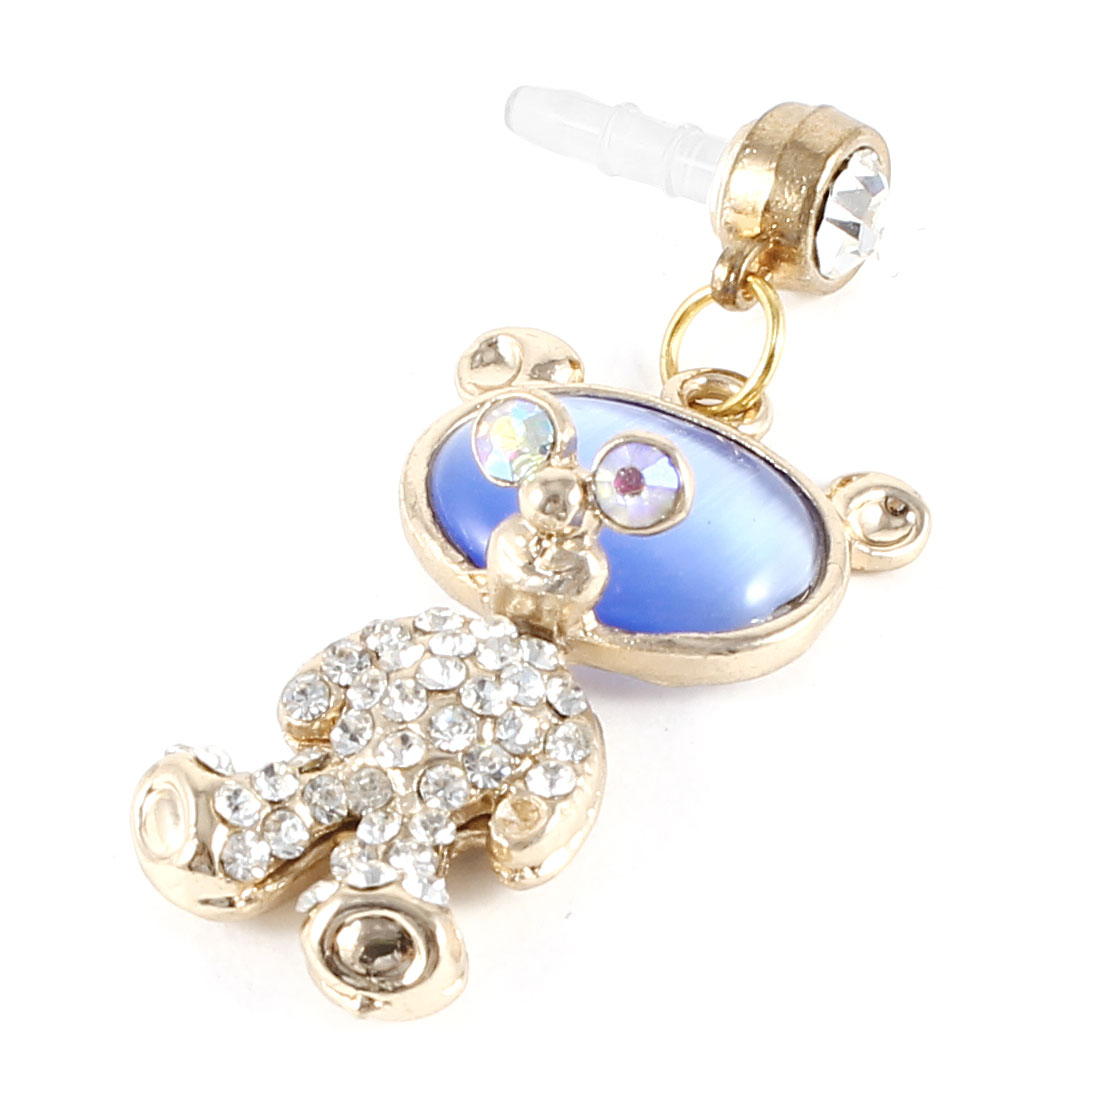 Rhinestone Accent Bear Shape Pendant 3.5mm Dust Ear Cap Stopper White Gold Tone for Smart Phone